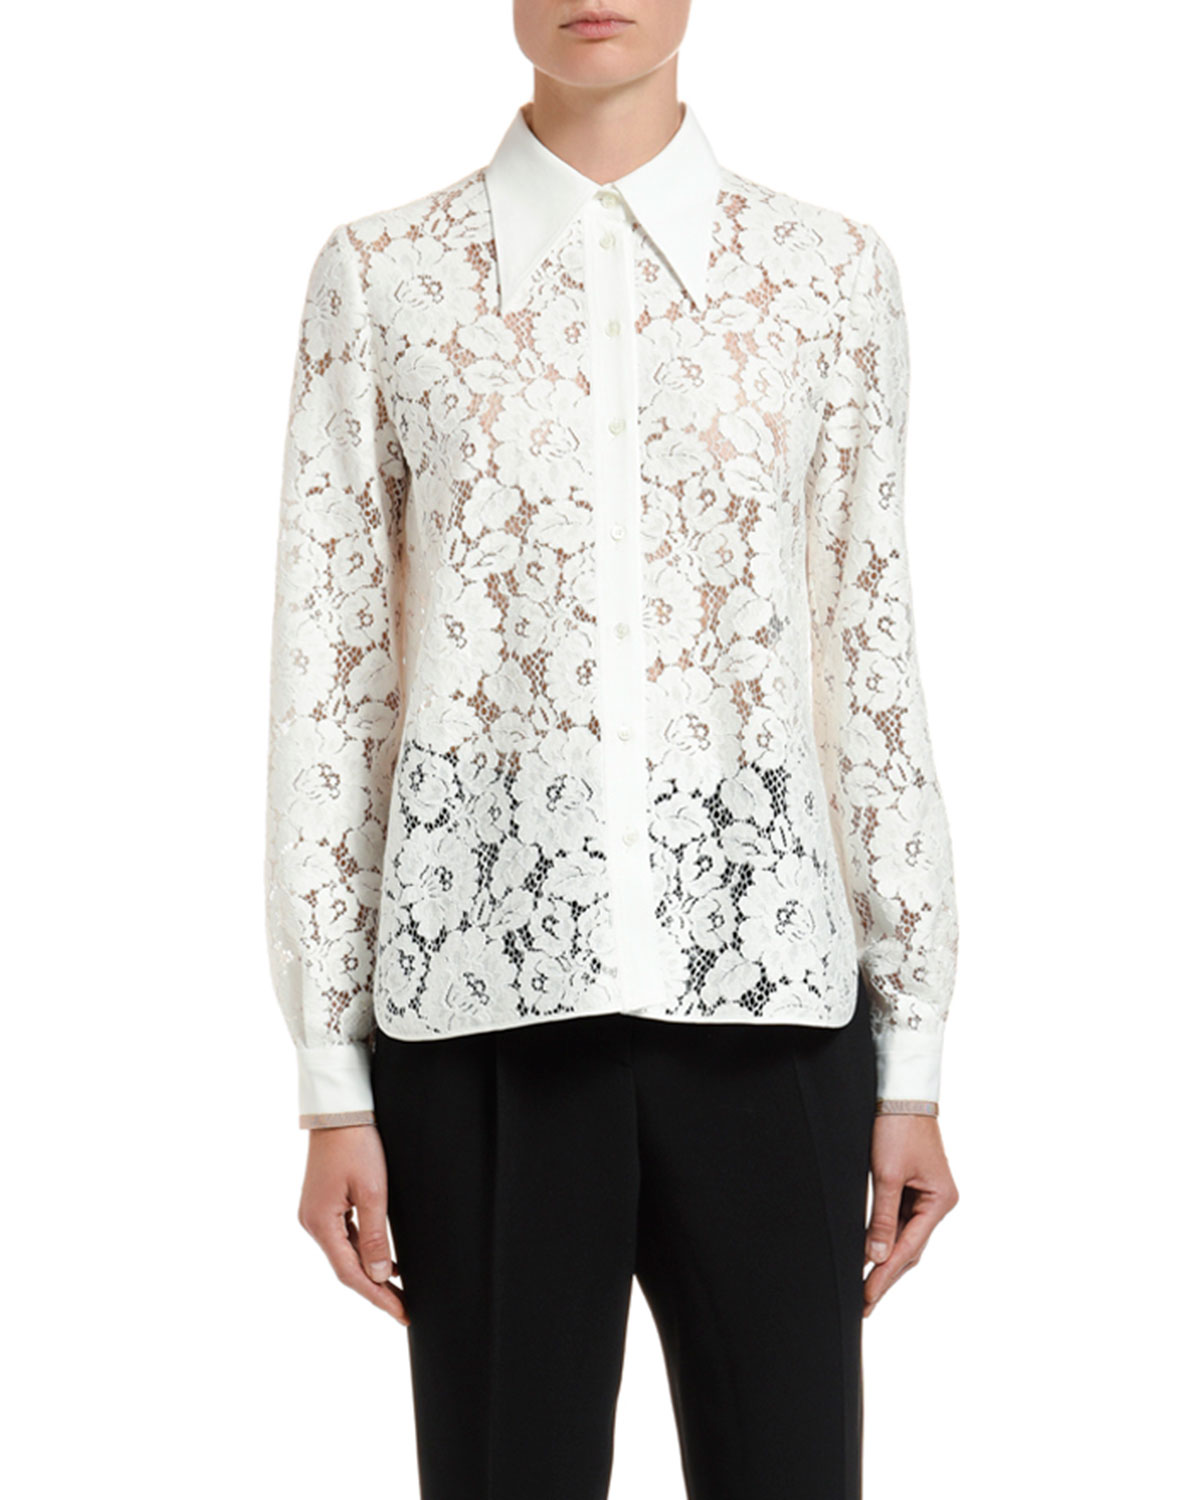 N°21 T-shirts LACE POINTED-COLLAR SHIRT